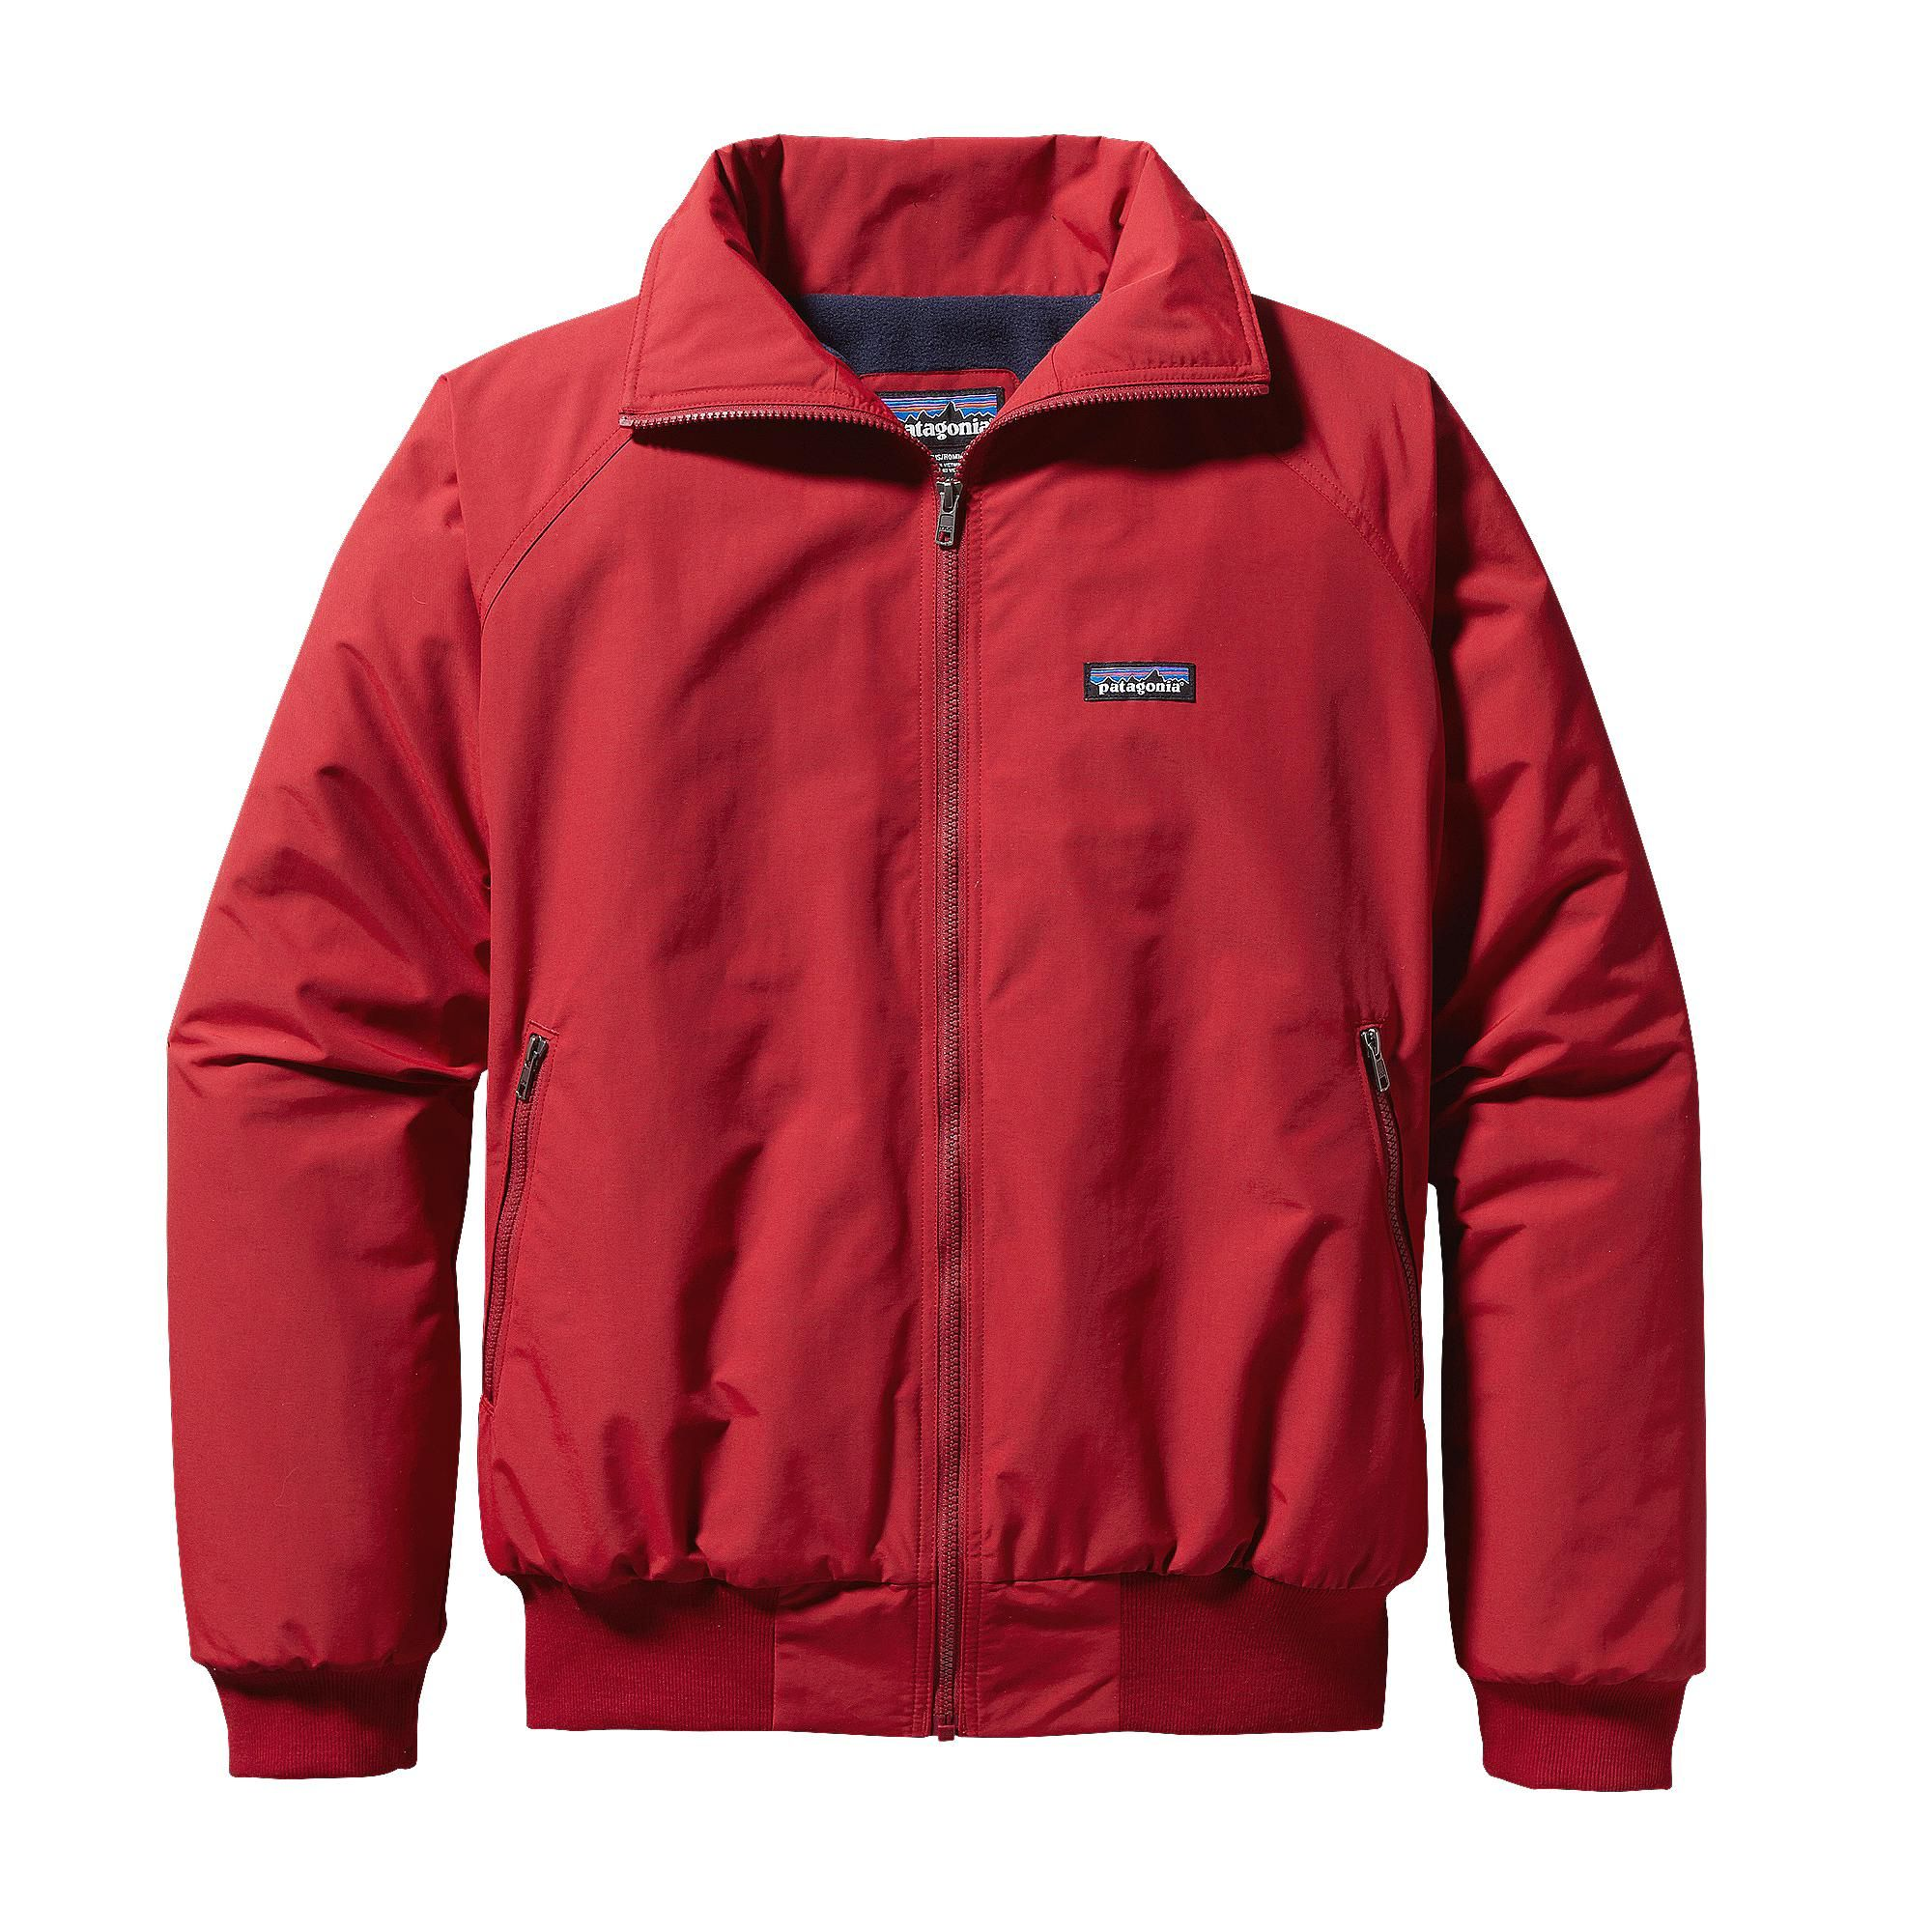 Patagonia Men S Shelled Synchilla Fleece Lined Jacket Patagonia Mens Jackets Mens Jackets [ 2000 x 2000 Pixel ]